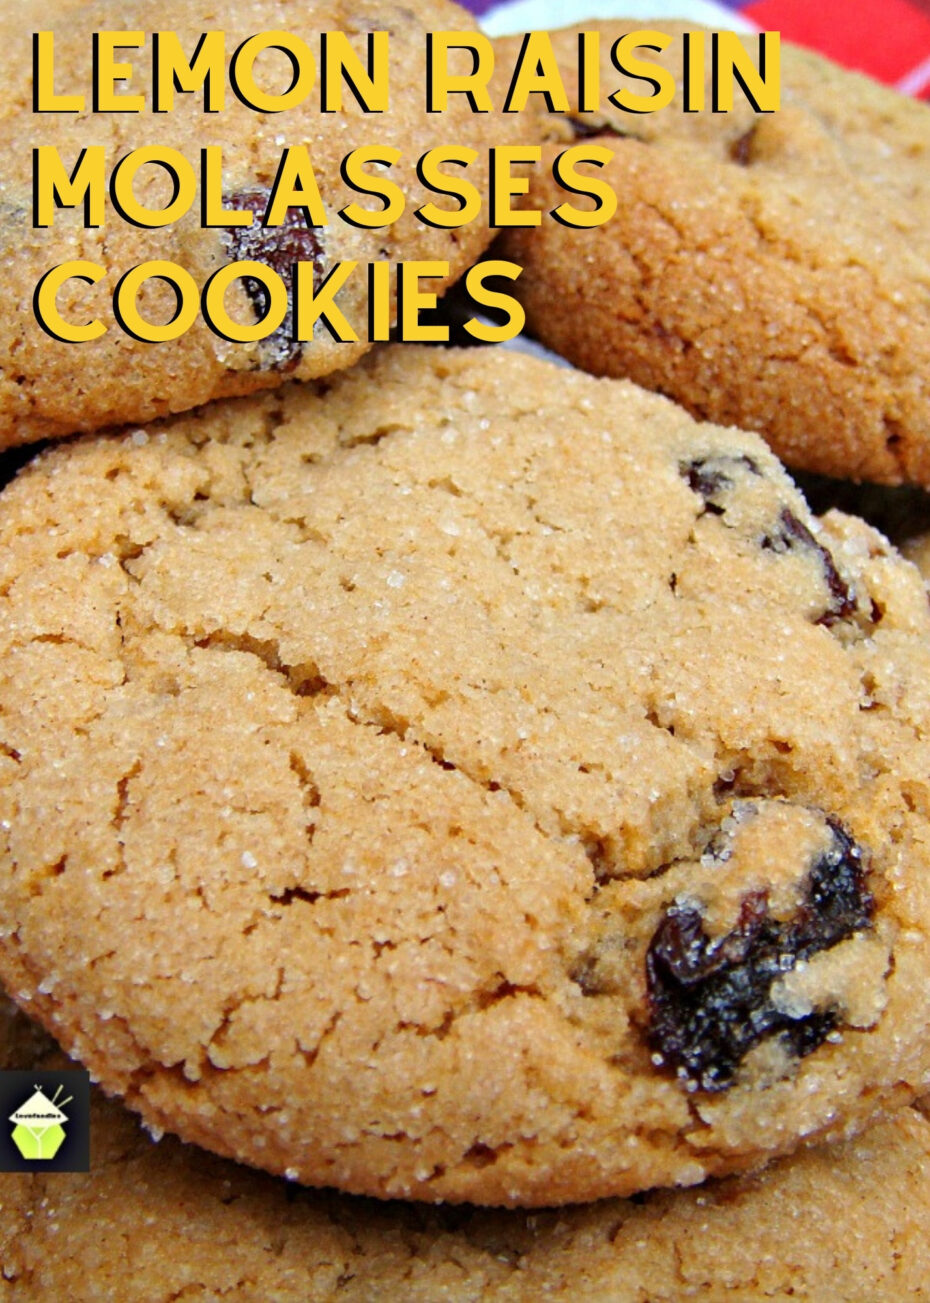 Lemon Raisin Molasses Cookies. Lemon raisin molasses cookies are crispy on the outside and chewy on the inside cookies with lemon infused raisins. A great cookie recipe all year round